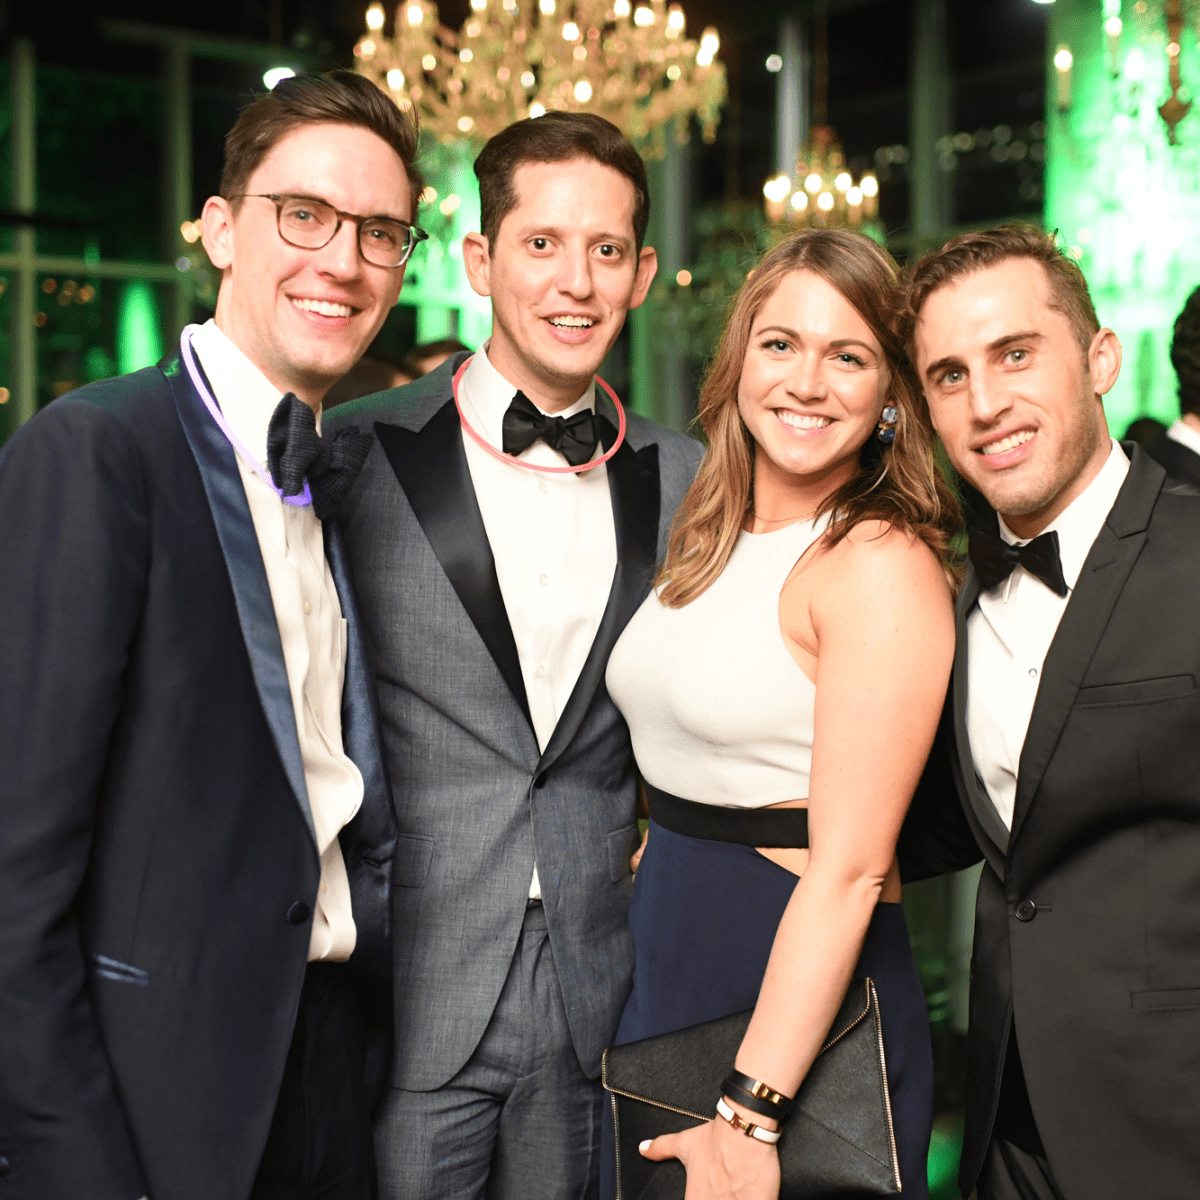 Houston, Jungle Book Gala, Sept. 2017, Nick Lovitt, Fidel Garza, Madeline Matthews, Michael Mandola